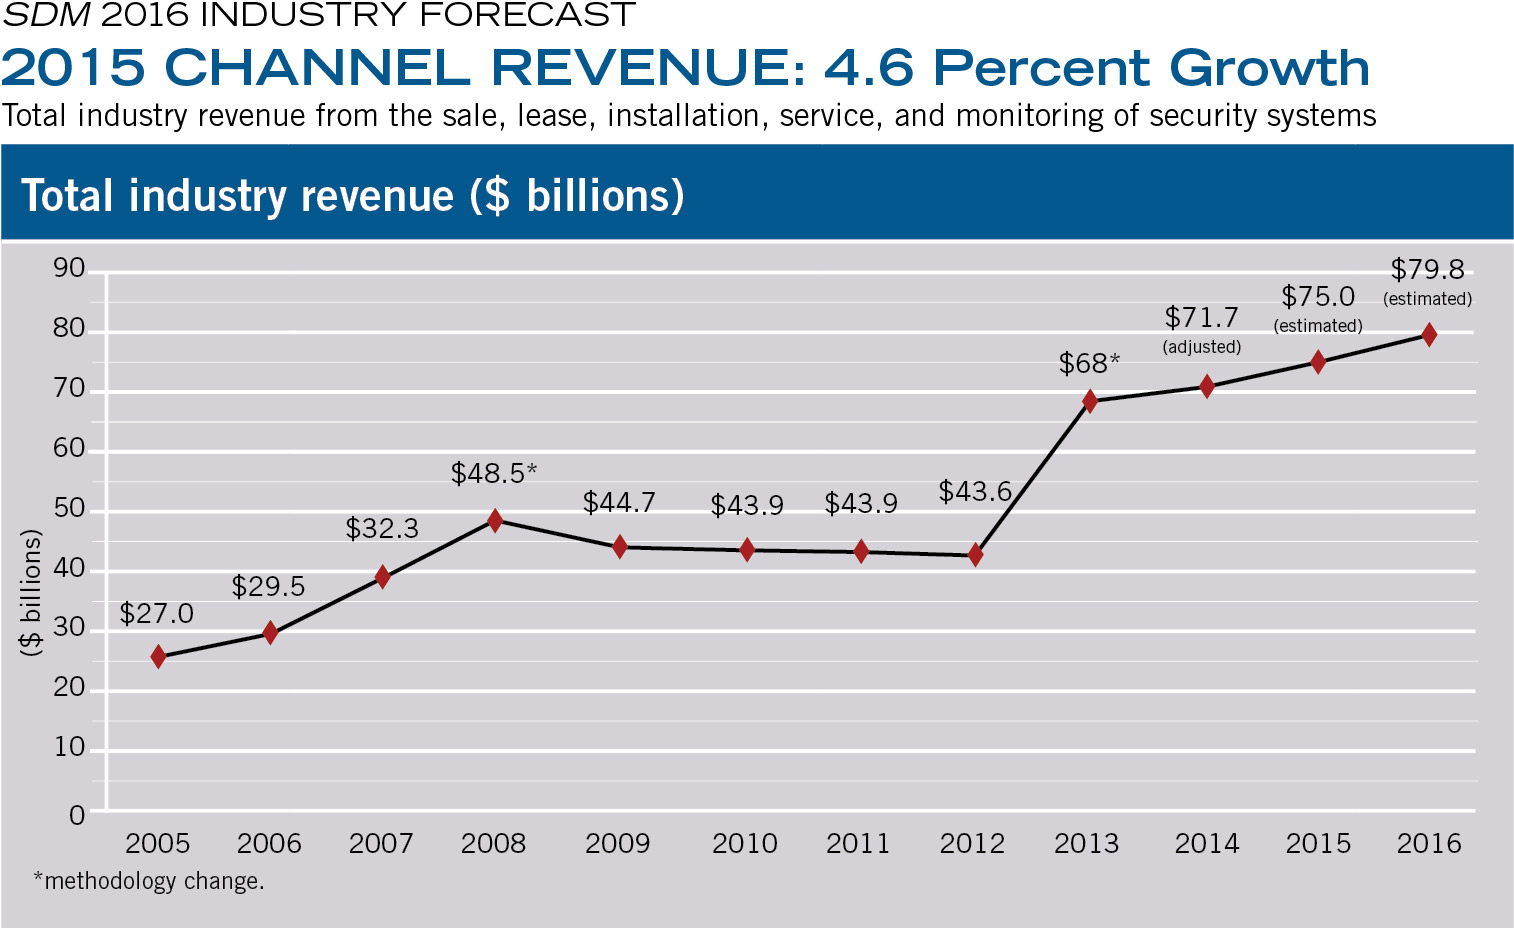 2015 CHANNEL REVENUE: 4.6 Percent Growth